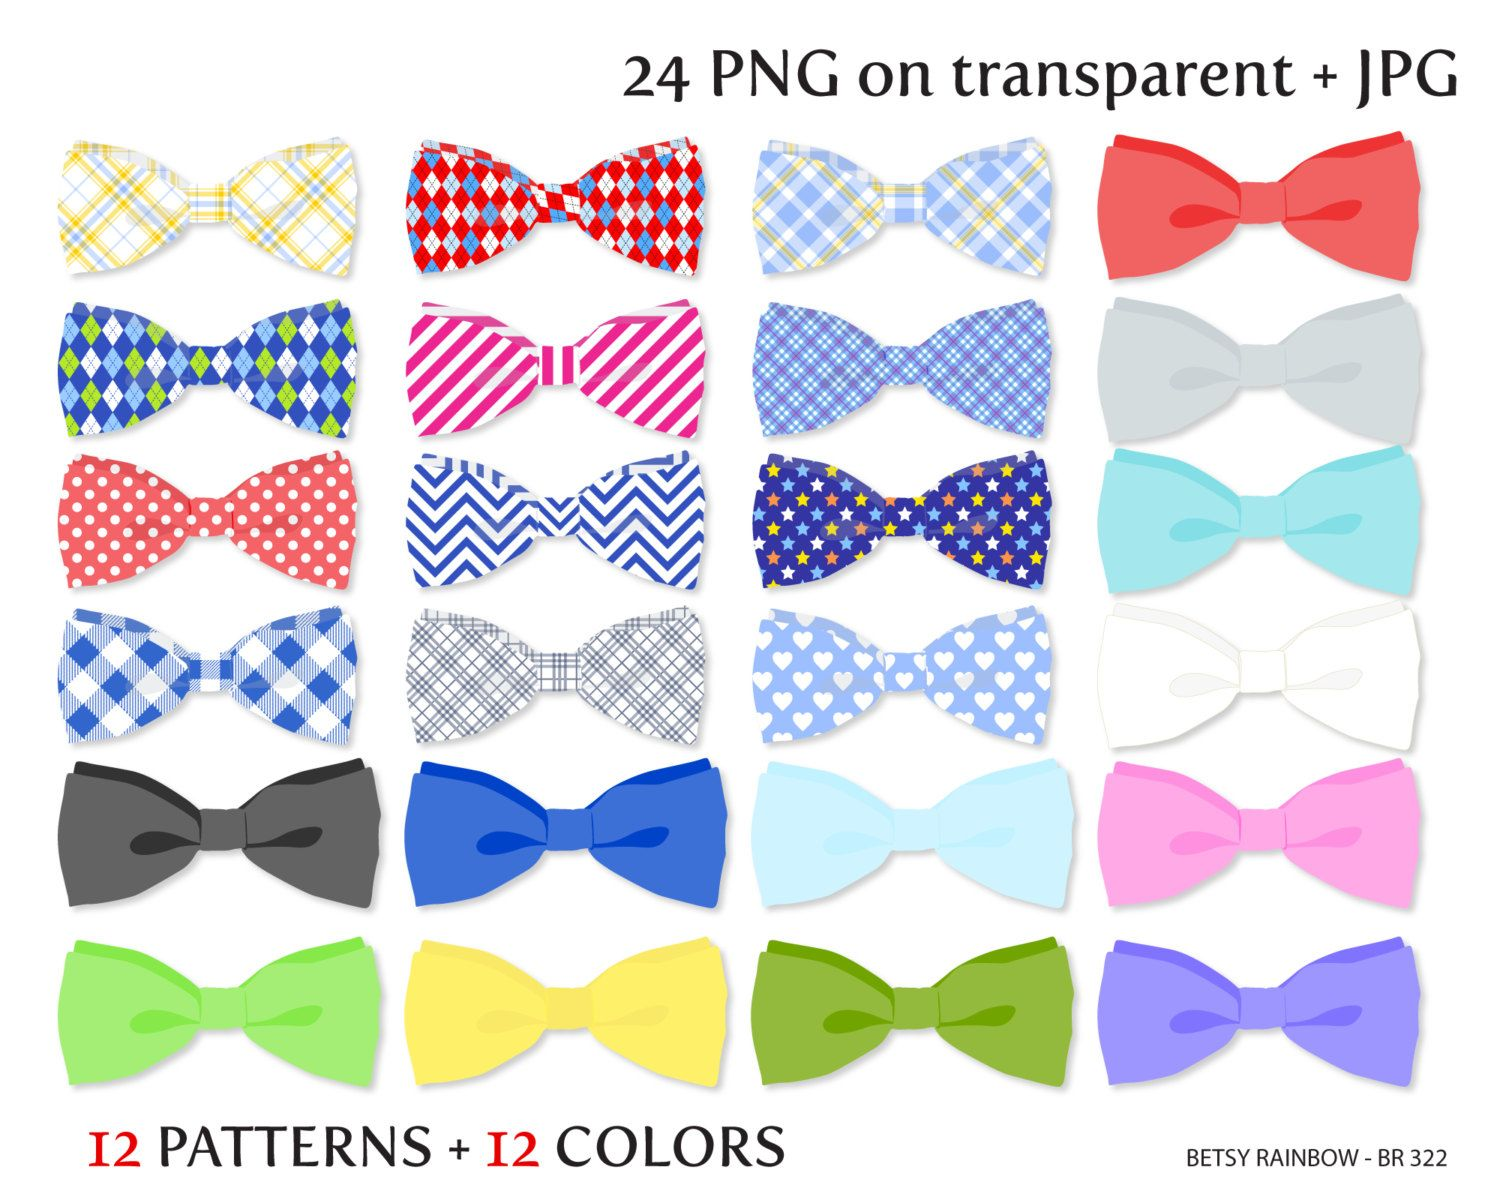 Bow tie clipart, PNG and JPG, neck bow tie clipart, neck ...